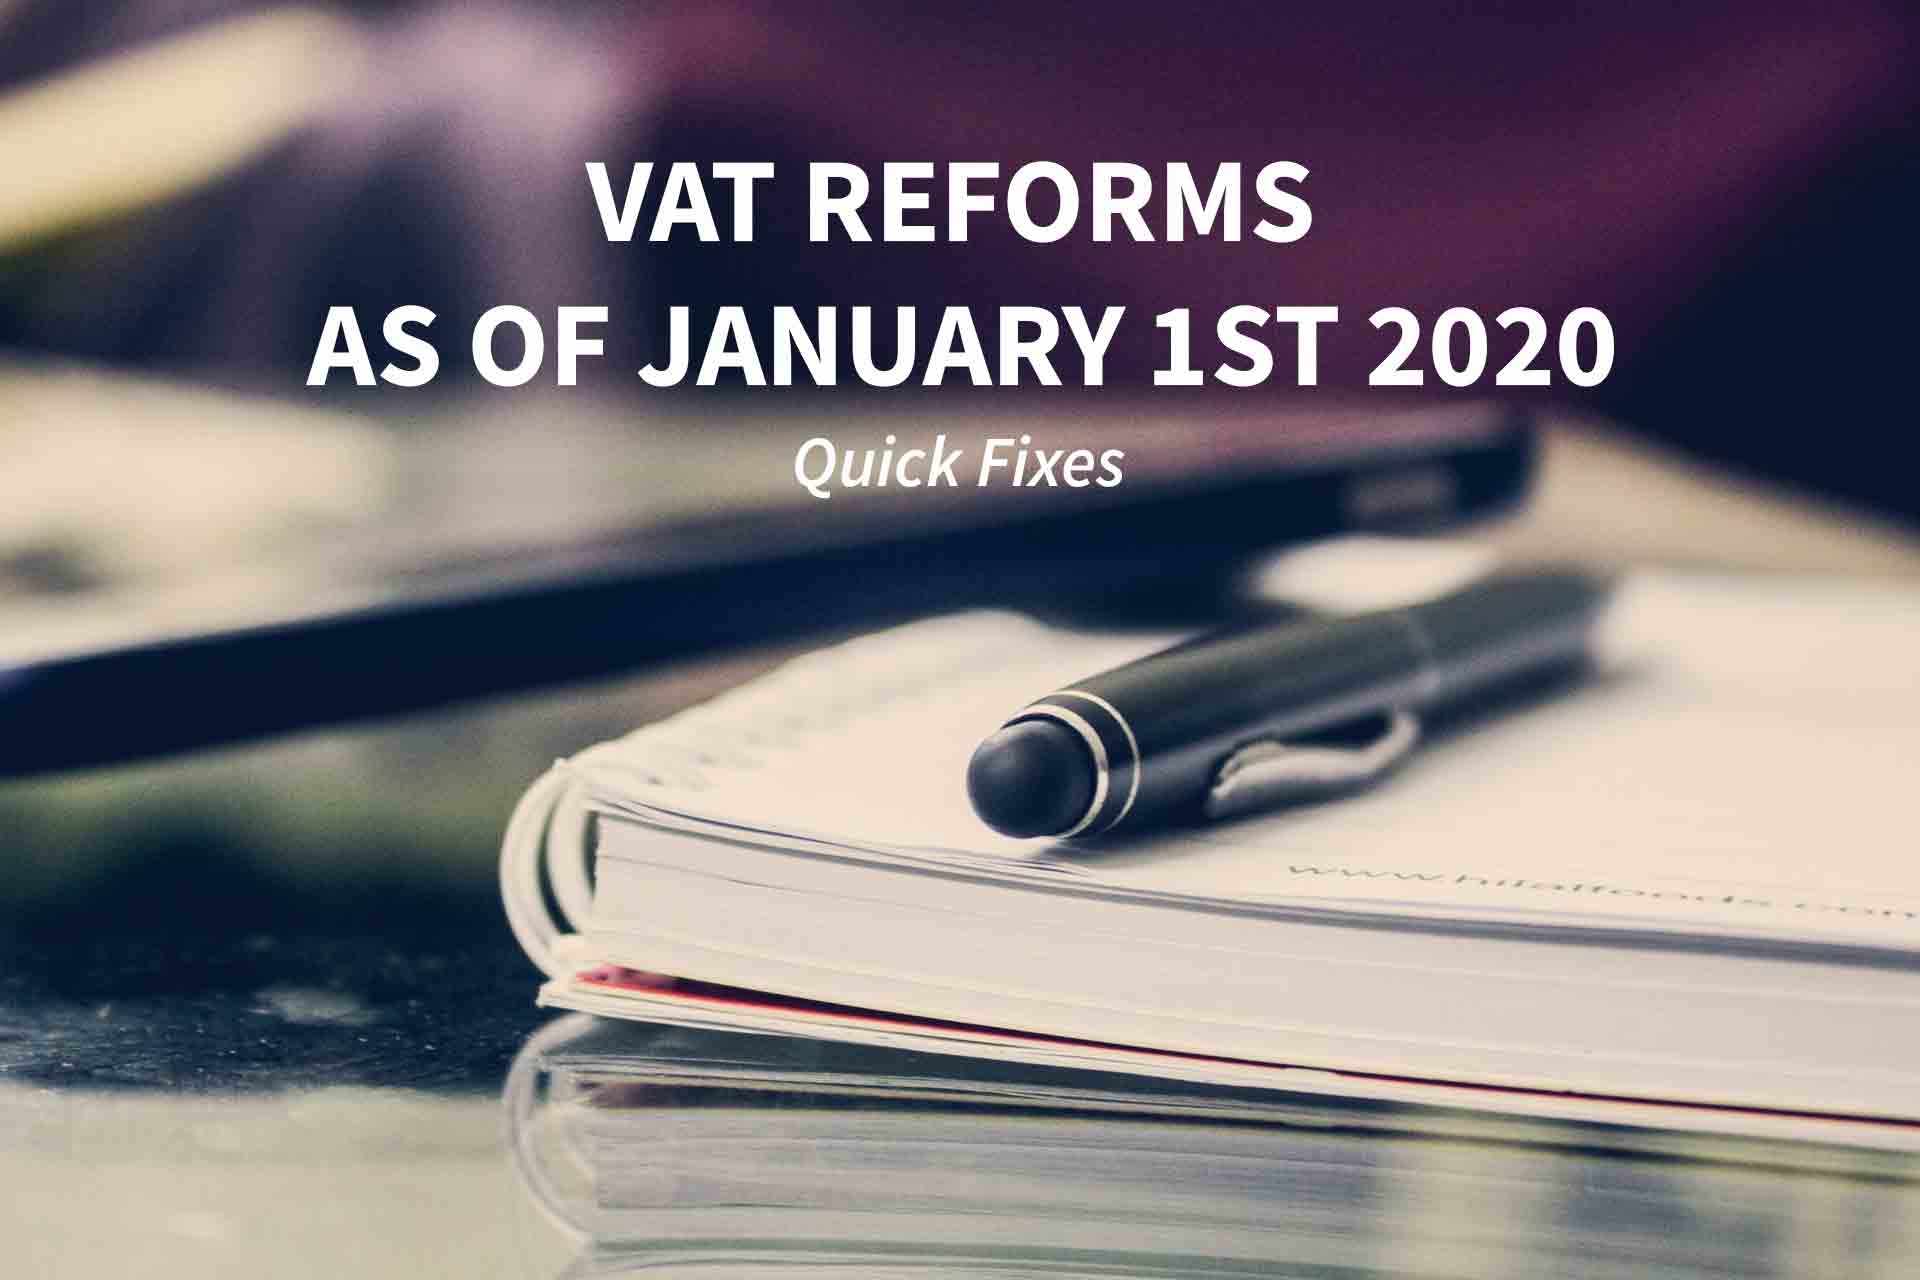 Quick Fixes & VAT reforms: entry into force on January 1st 2020 (1/2)